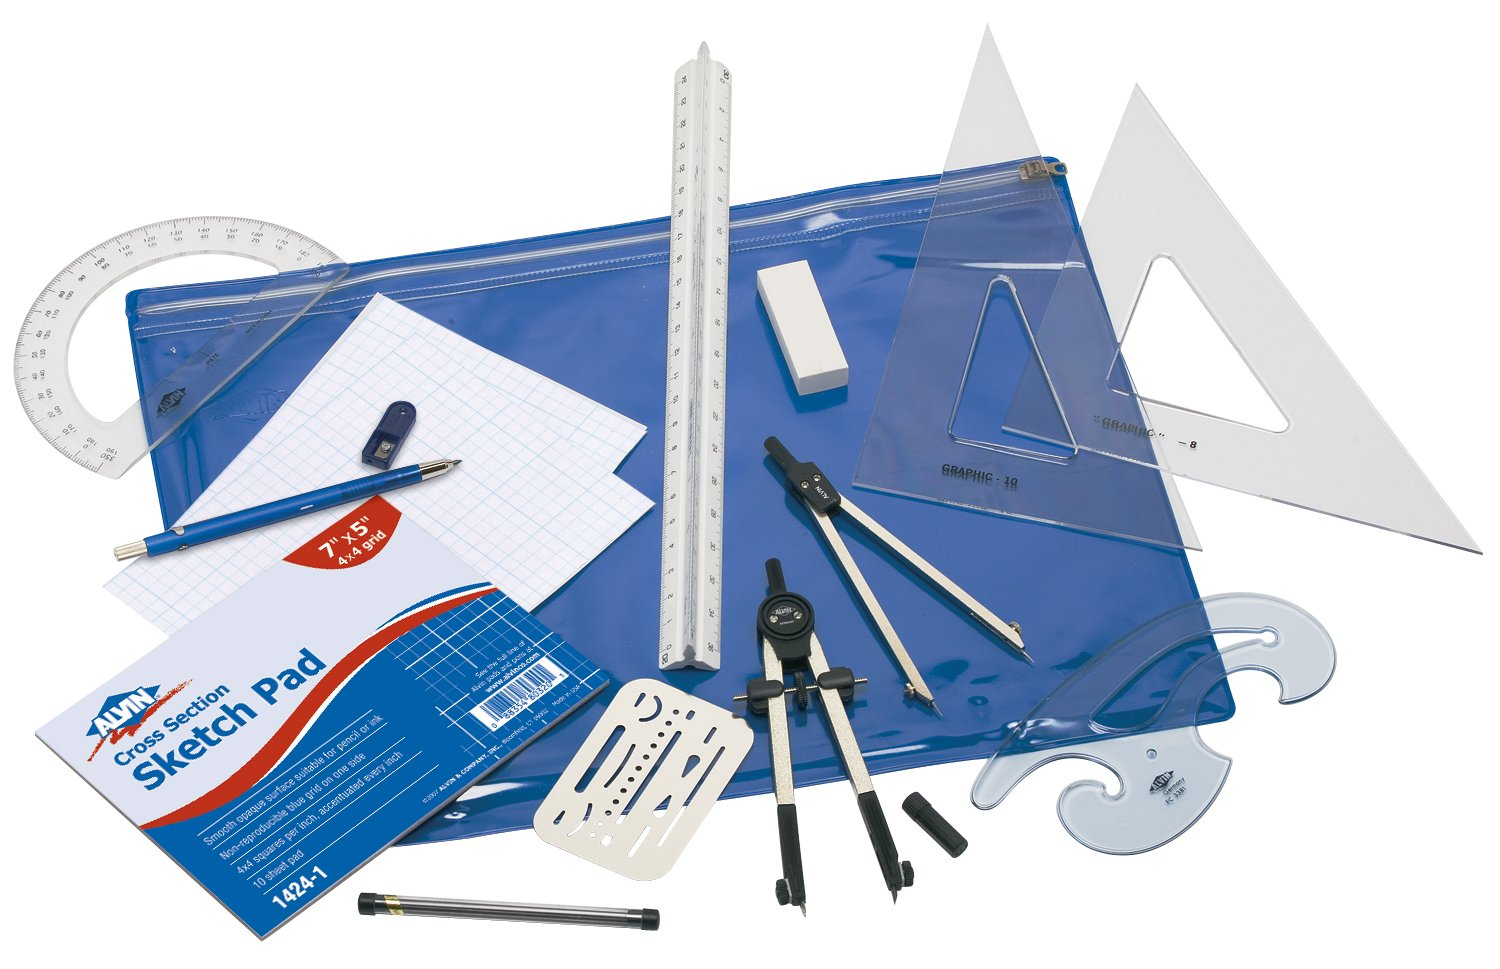 Alvin, BDK-1E, Basic Beginner's Drafting Engineers' Kit, Drawing and Geometry Set by Alvin